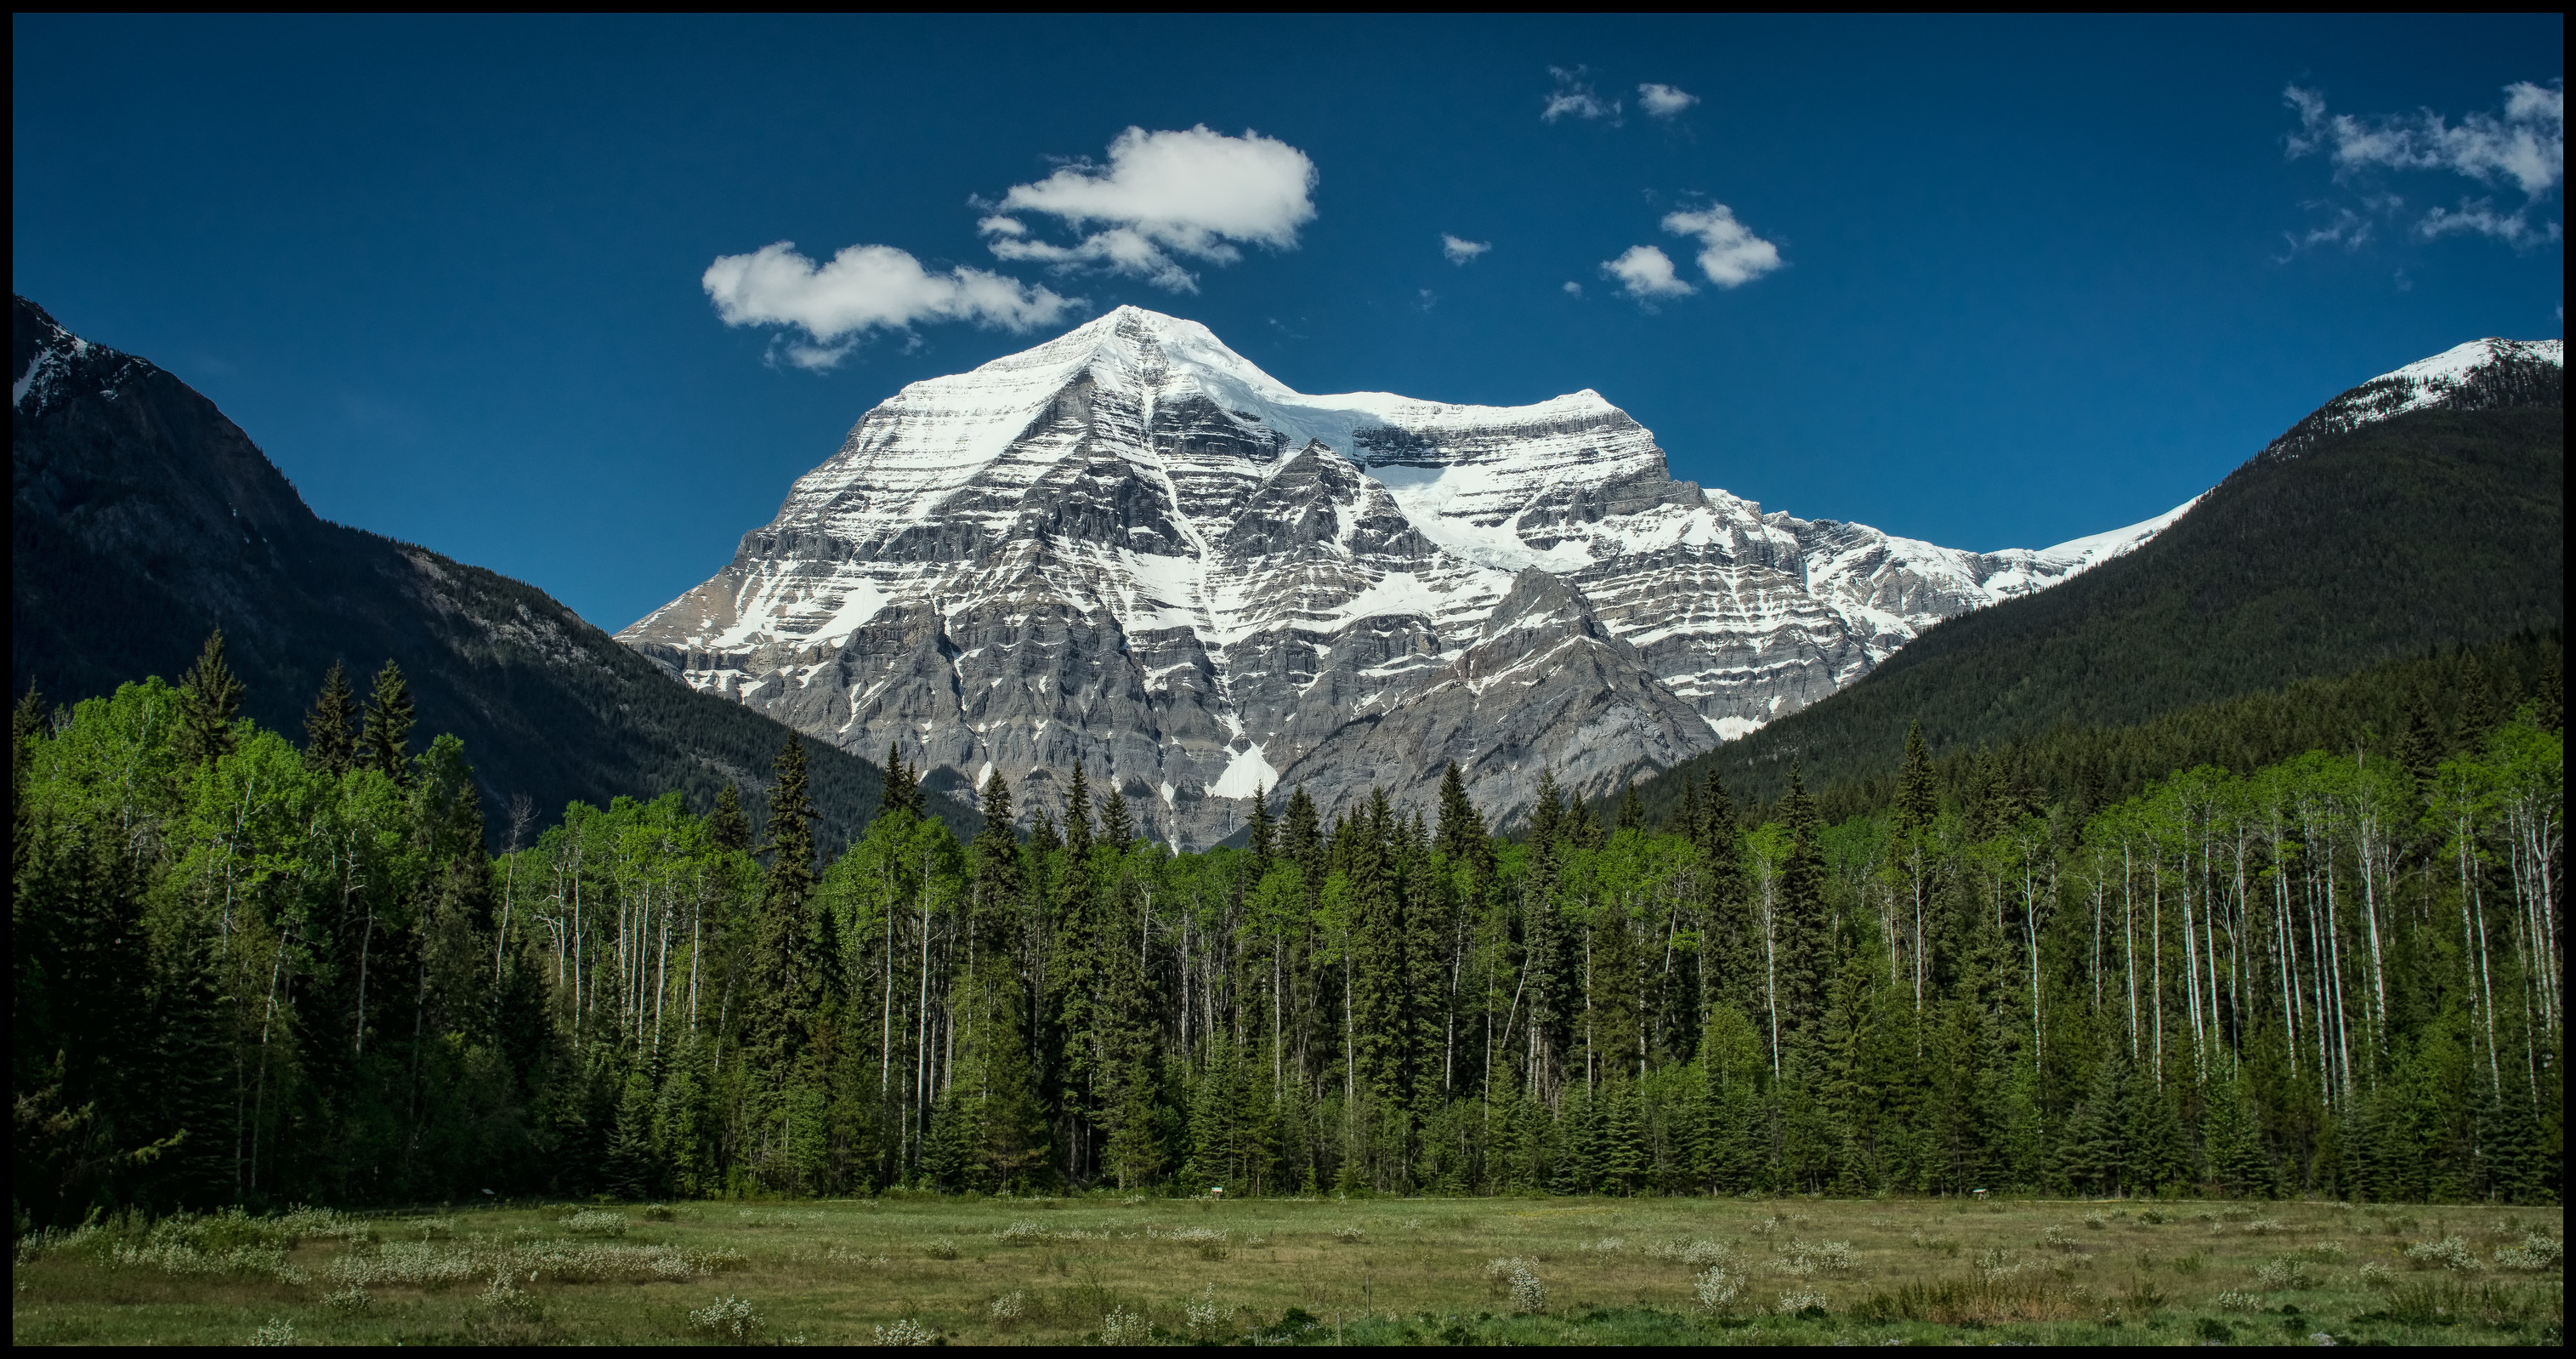 Mt. Robson from the visitor centre Sony A7 / Canon FD Tilt Shift 35 2.8